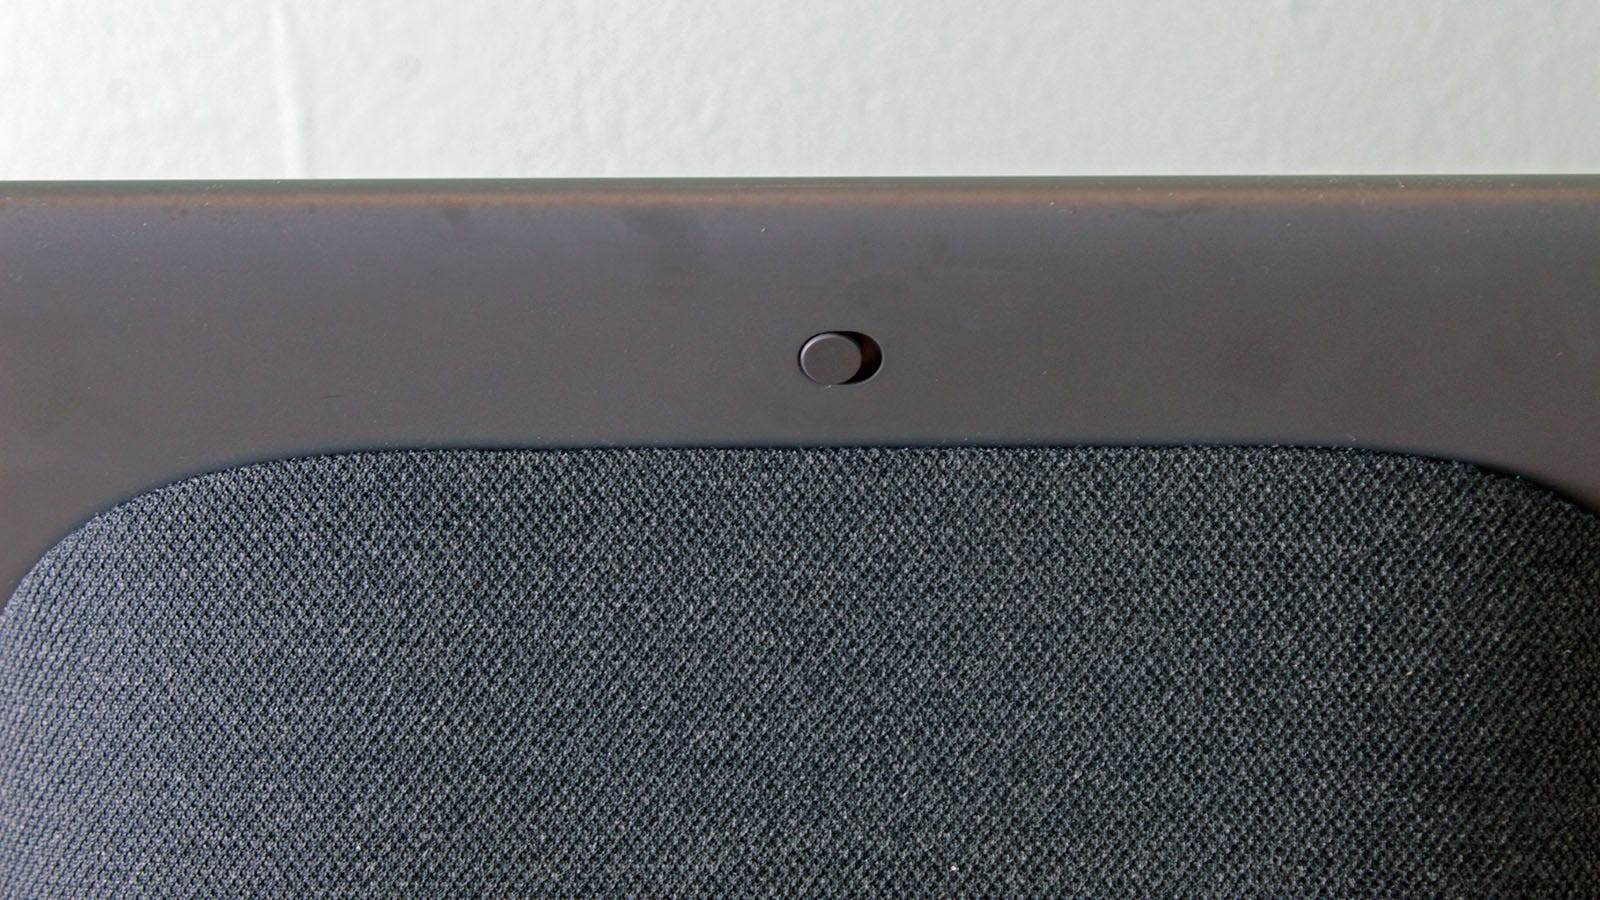 The back of the Nest Hub Max, featuring a slider switch.